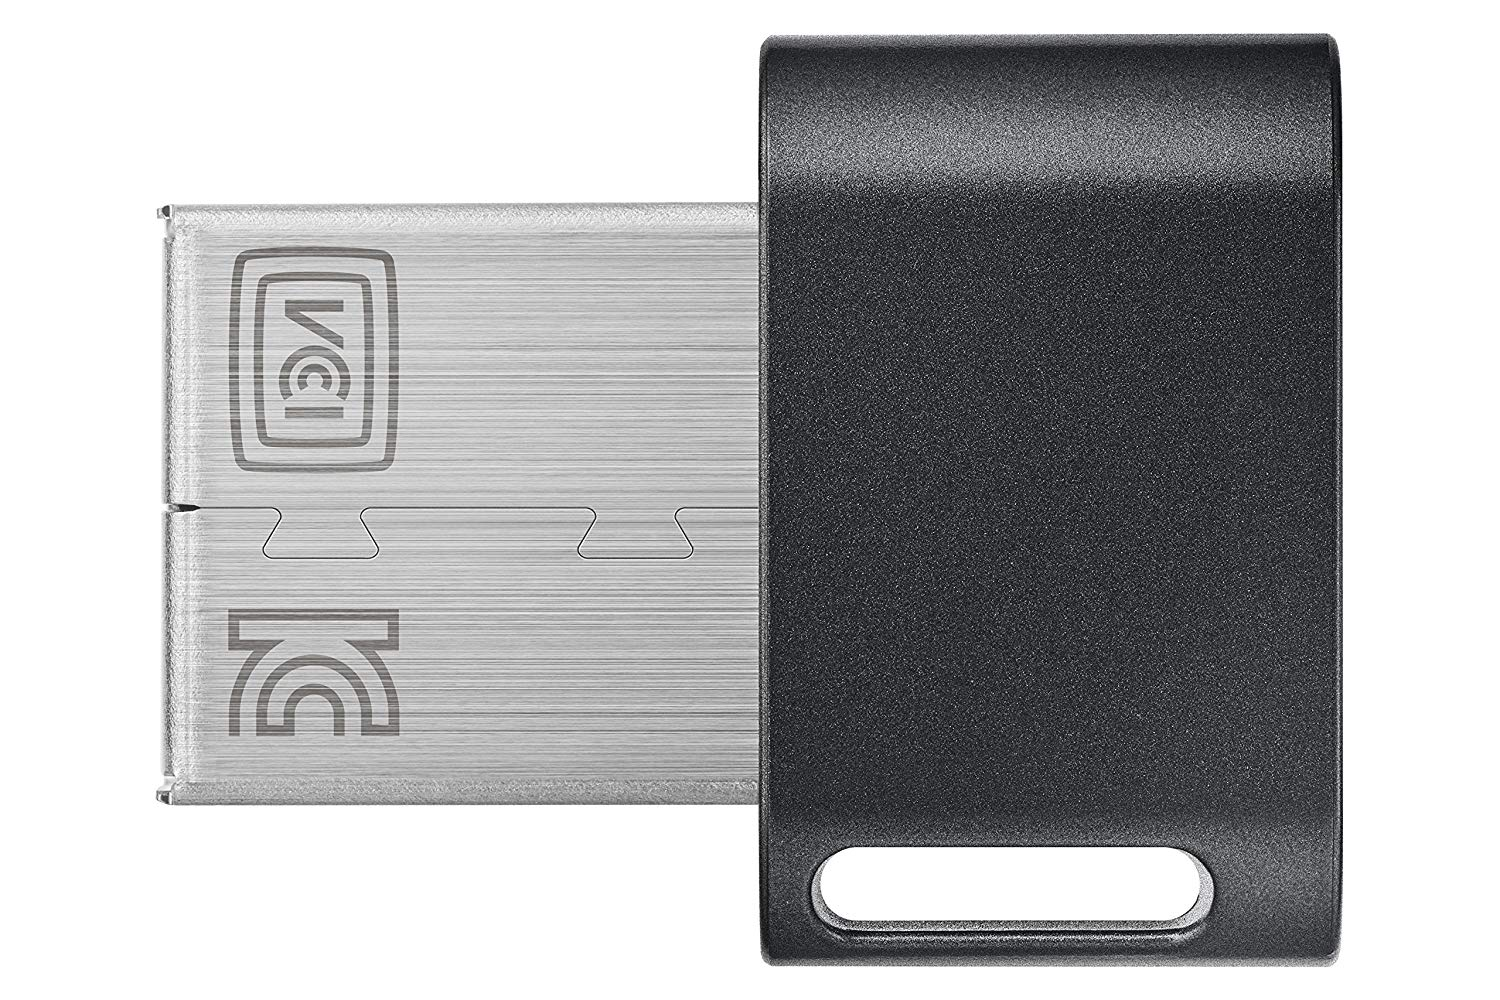 SAMSUNG USB 3.1 FLASH DRIVE FIT PLUS